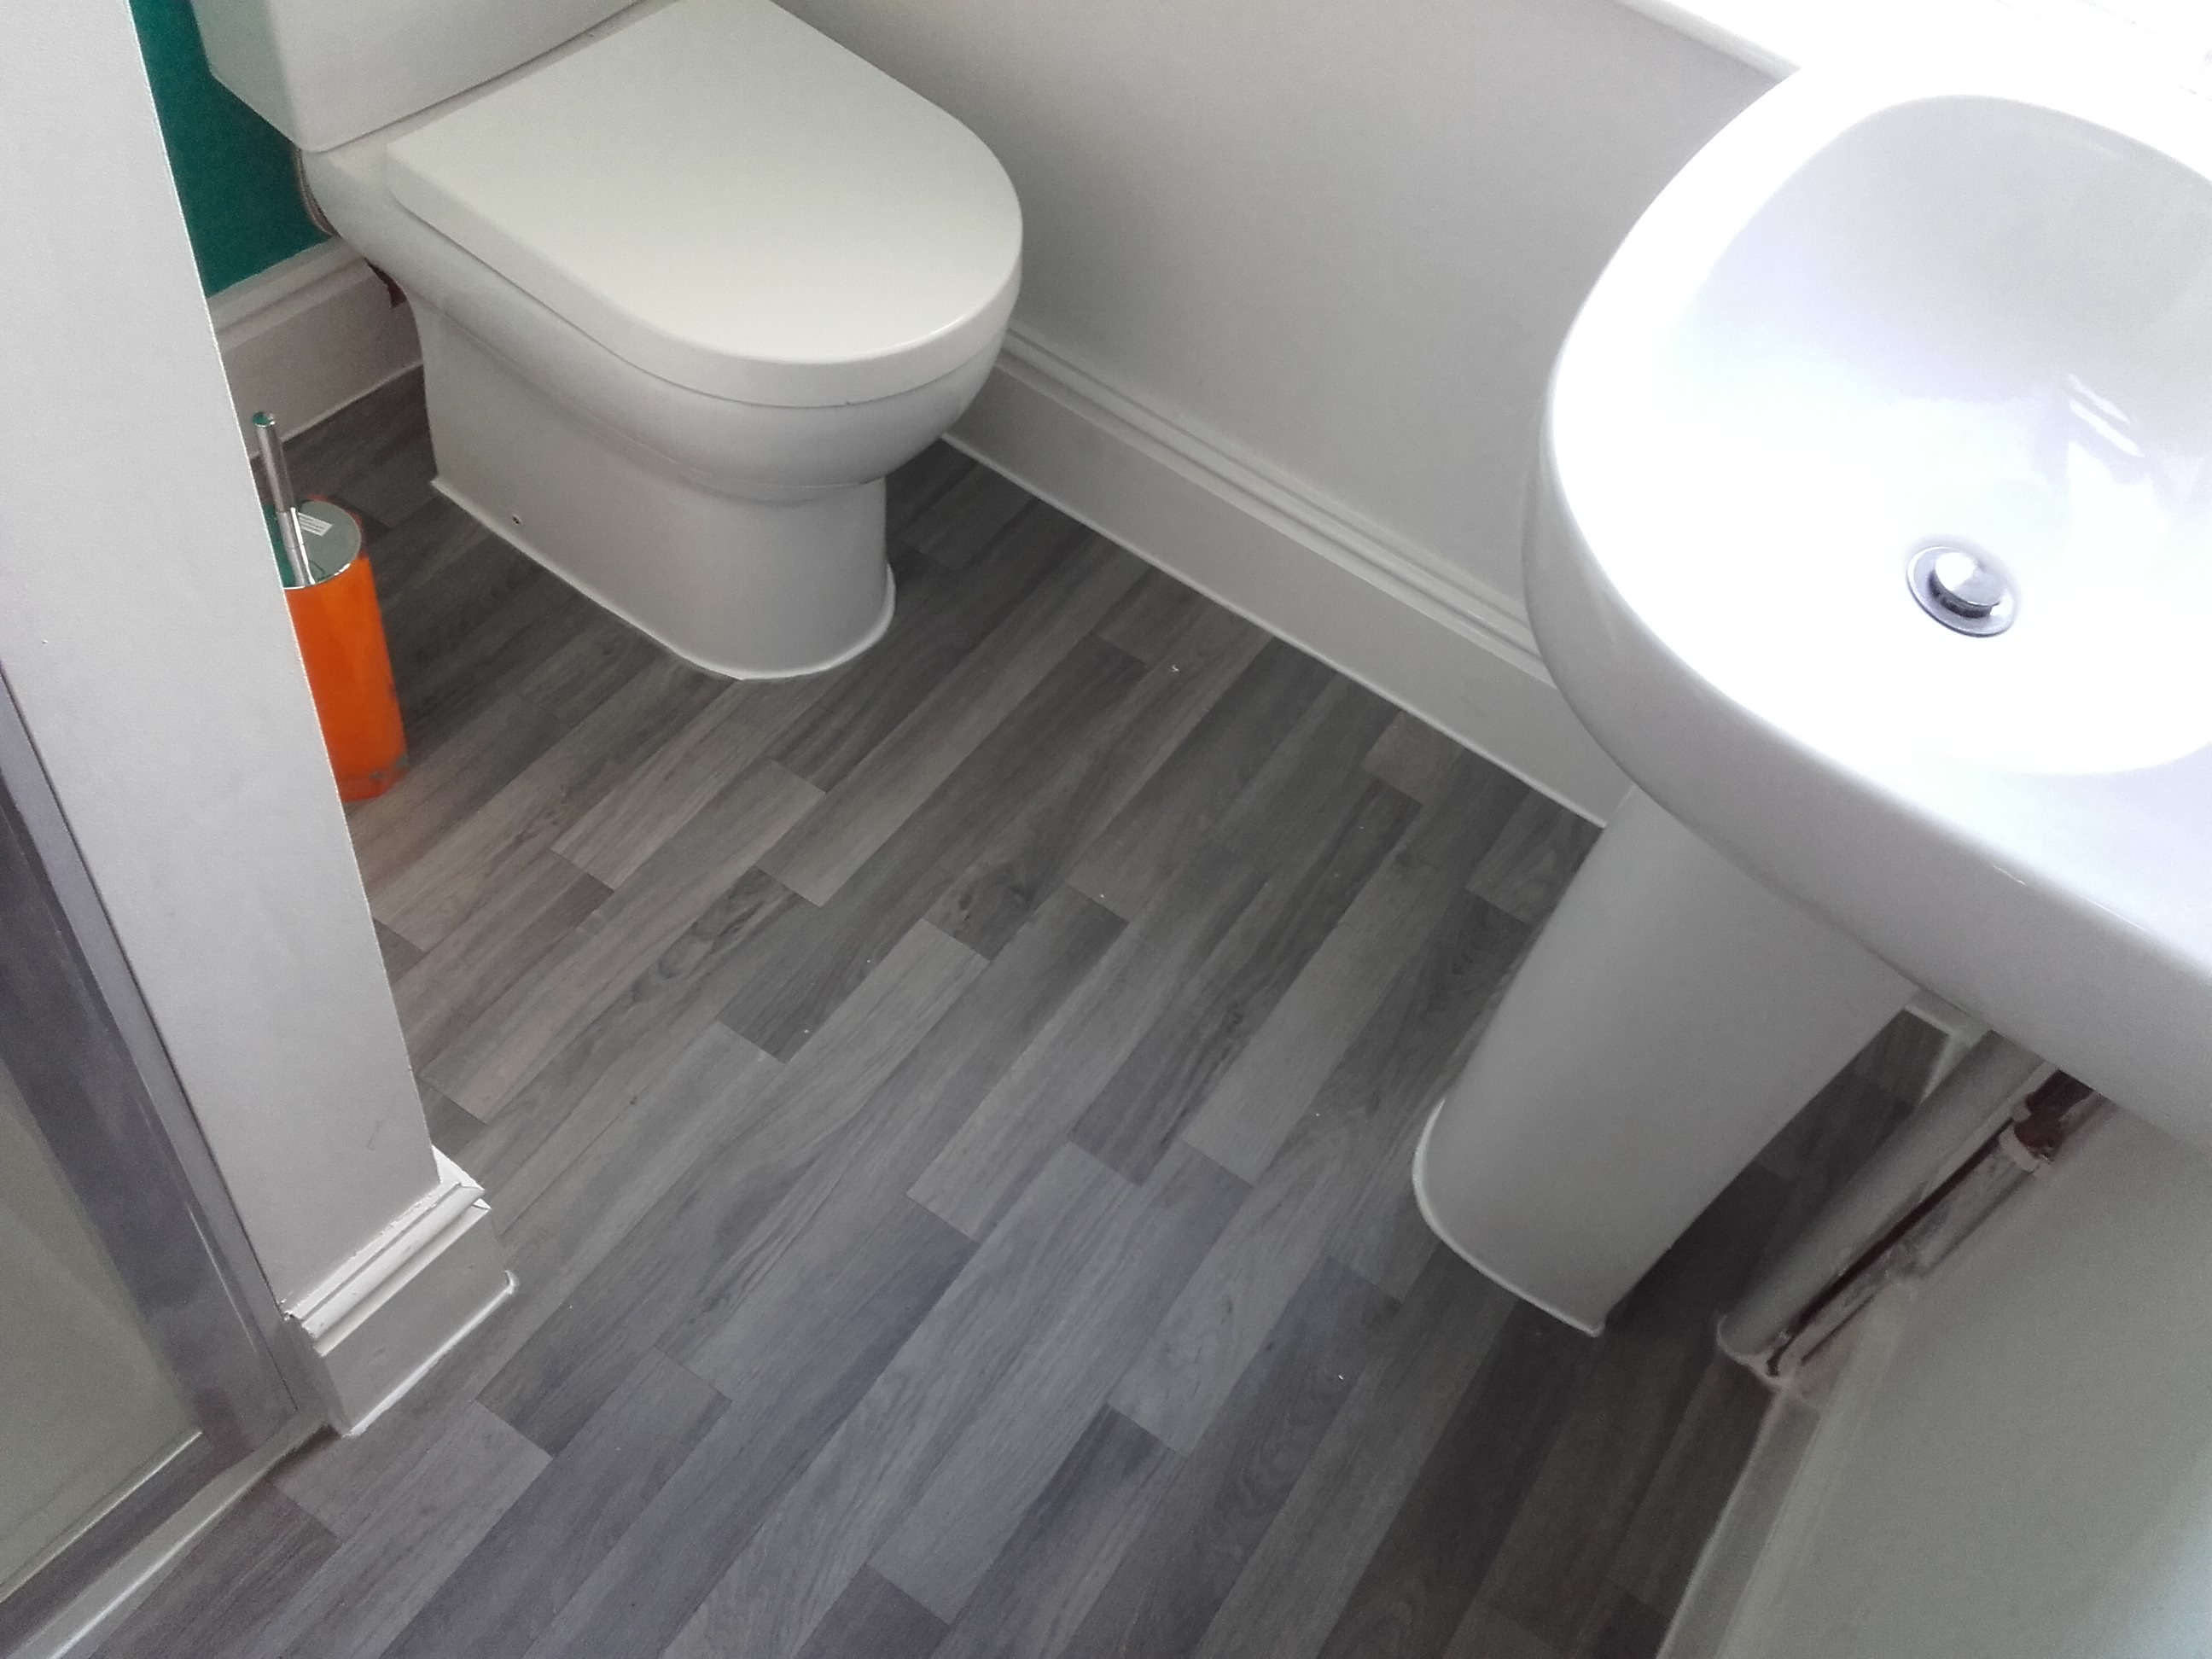 Goprohandyman vinyl bathroom flooring for Vinyl floor tiles in bathroom